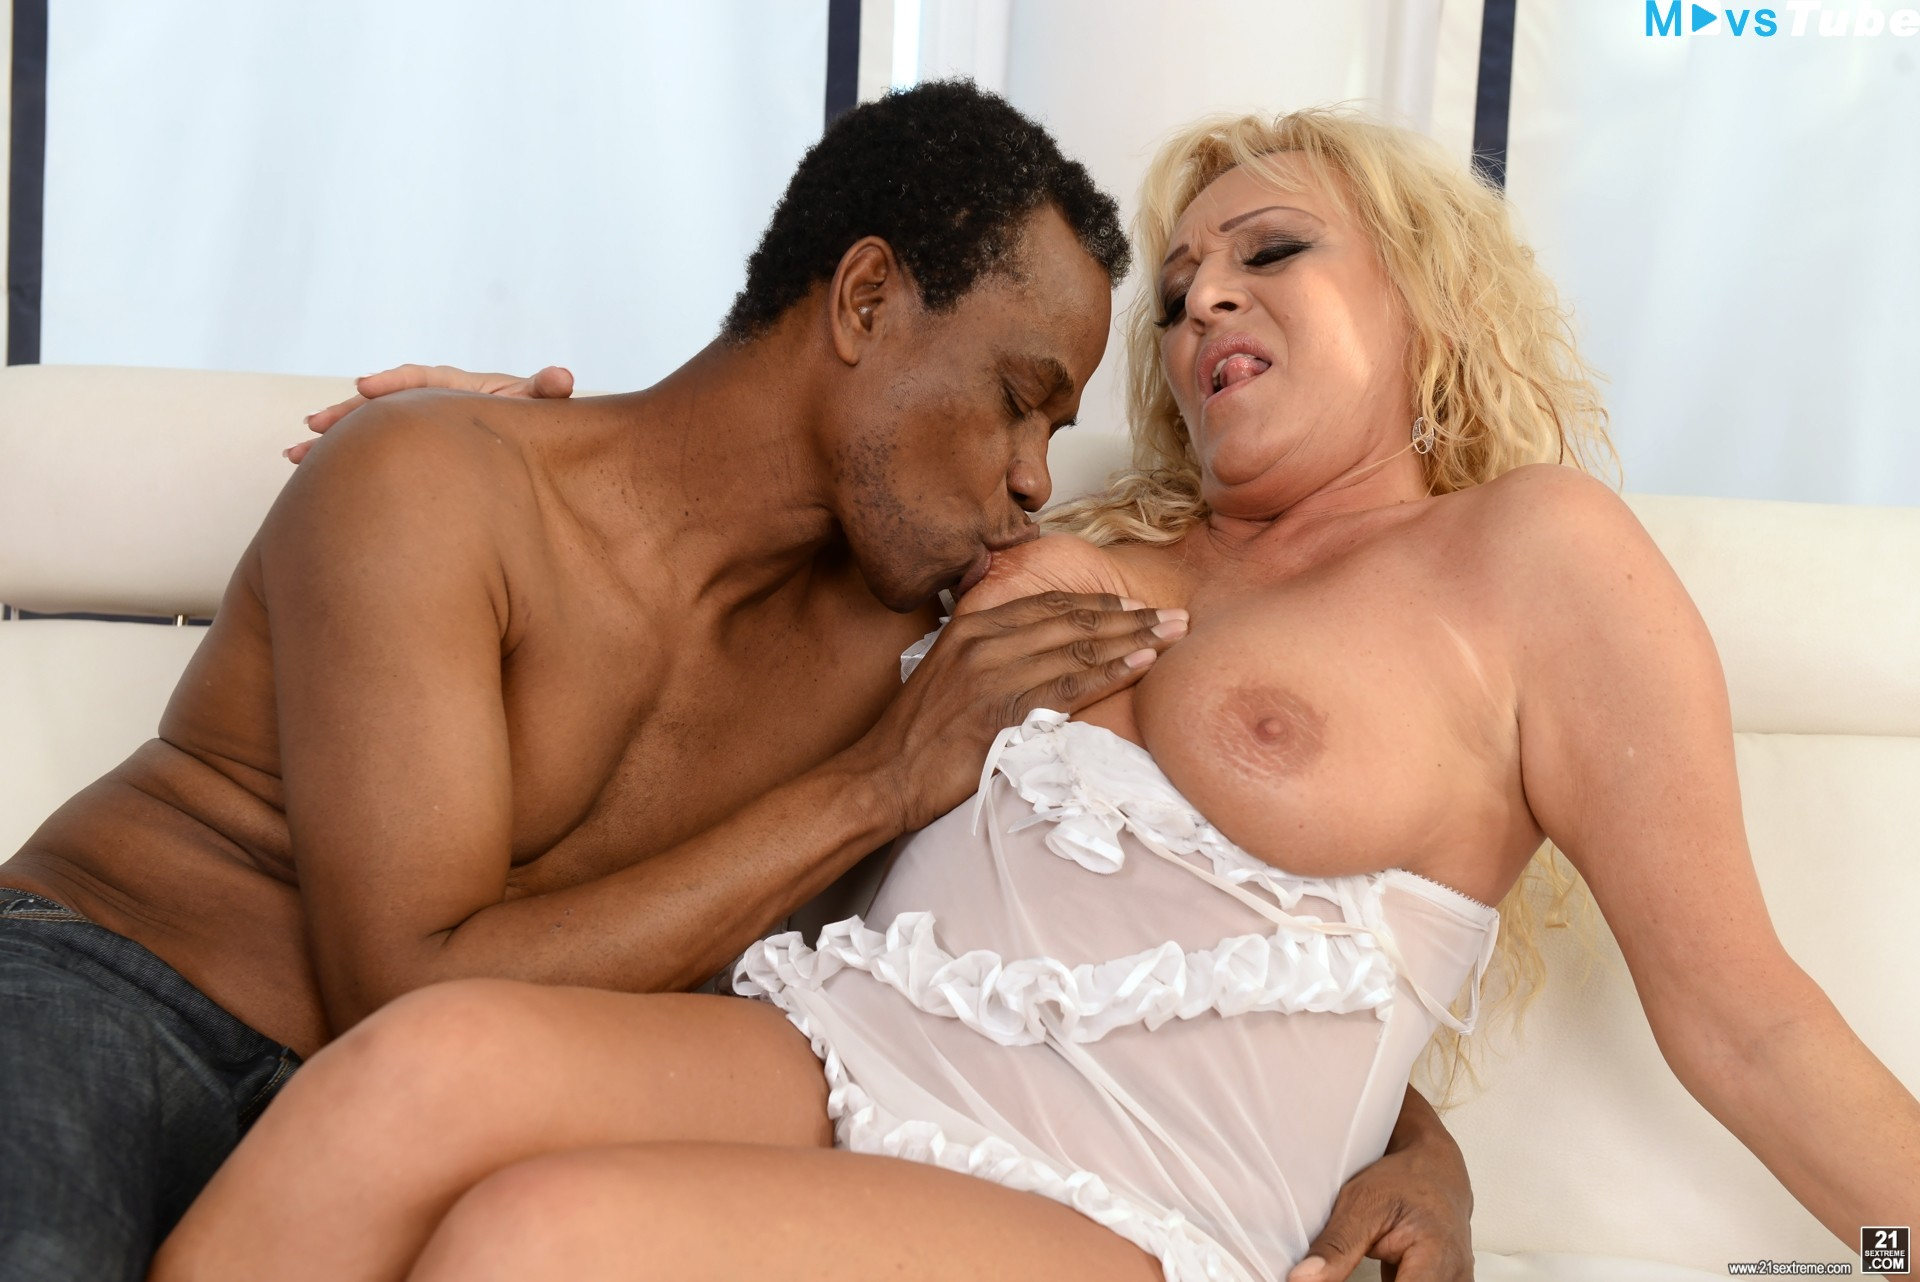 21 Sextreme Porno Net magdi melts with her black boyfriend 21sextreme 2016 magdi